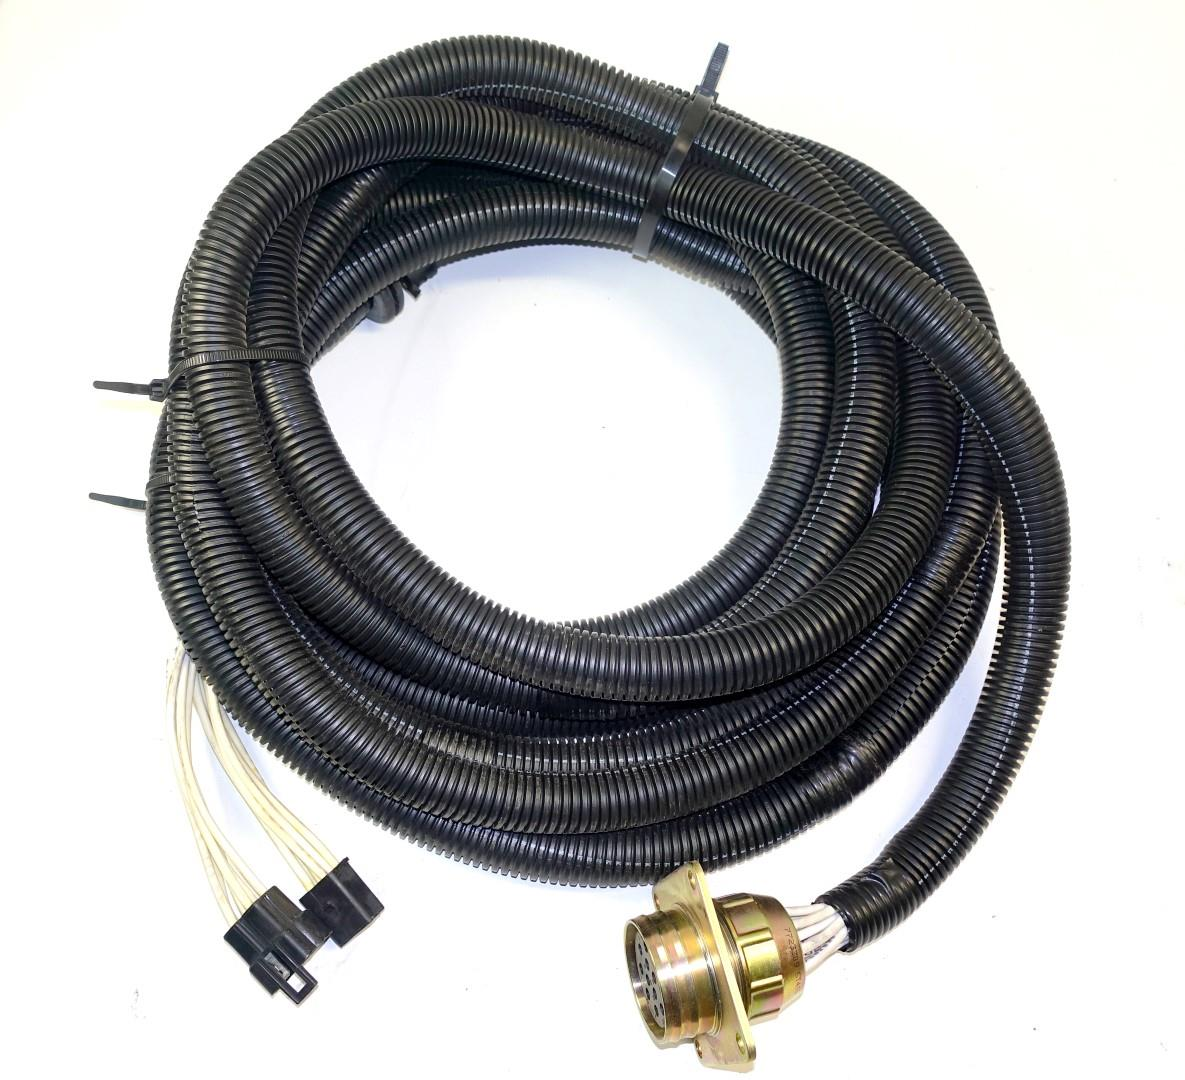 Parts Of Electrical Cables : Trailer electrical receptacle cable